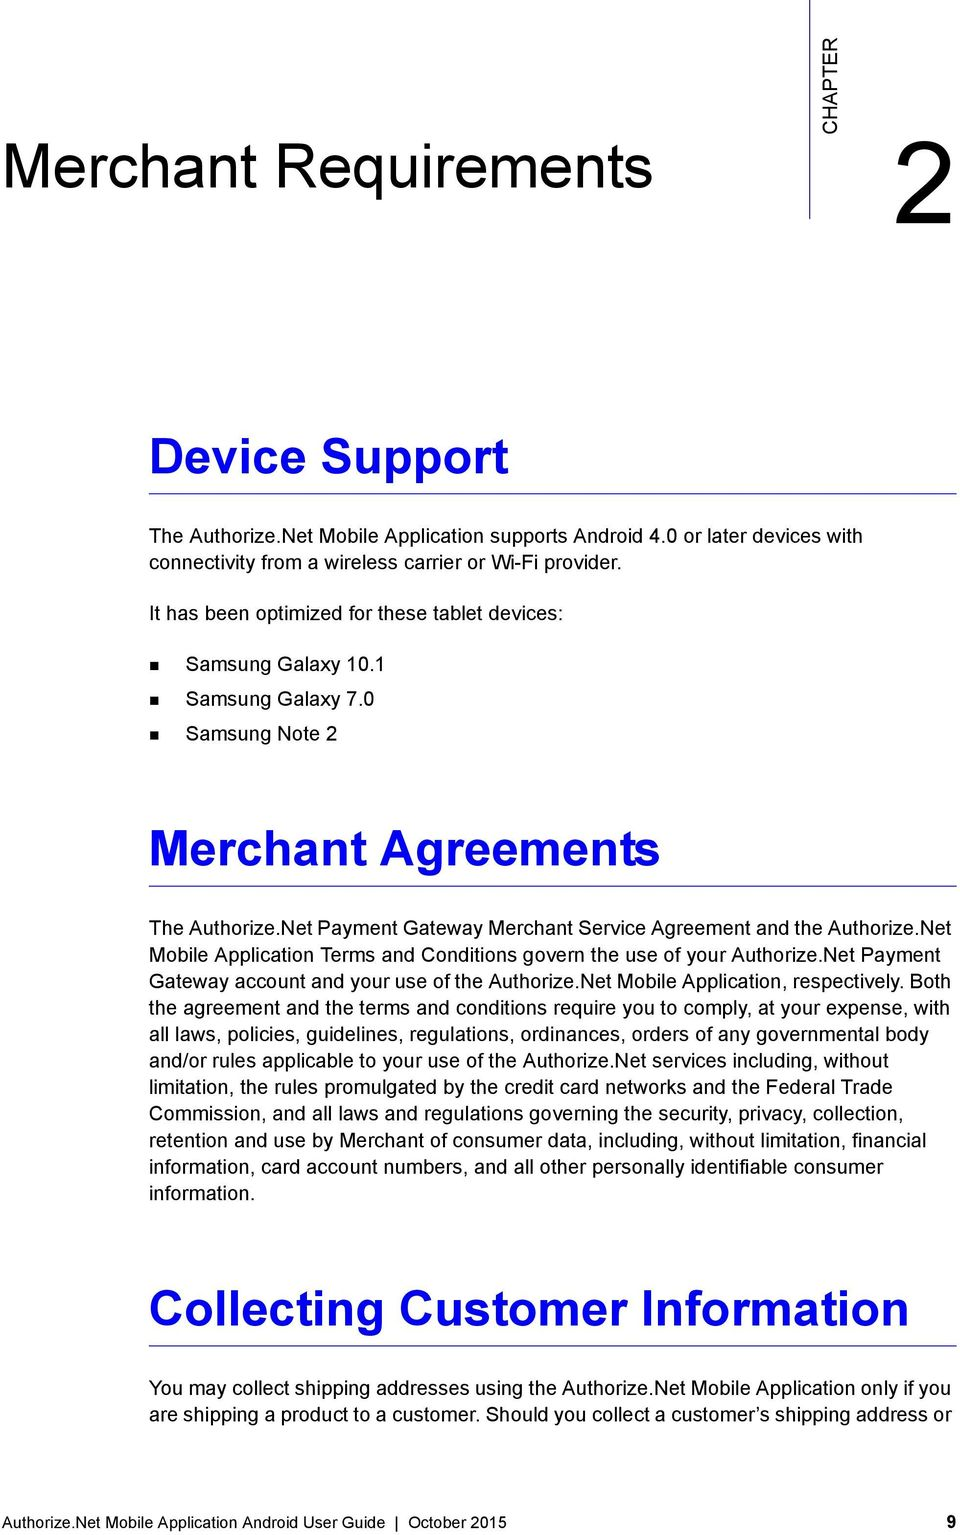 Net Payment Gateway Merchant Service Agreement and the Authorize.Net Mobile Application Terms and Conditions govern the use of your Authorize.Net Payment Gateway account and your use of the Authorize.